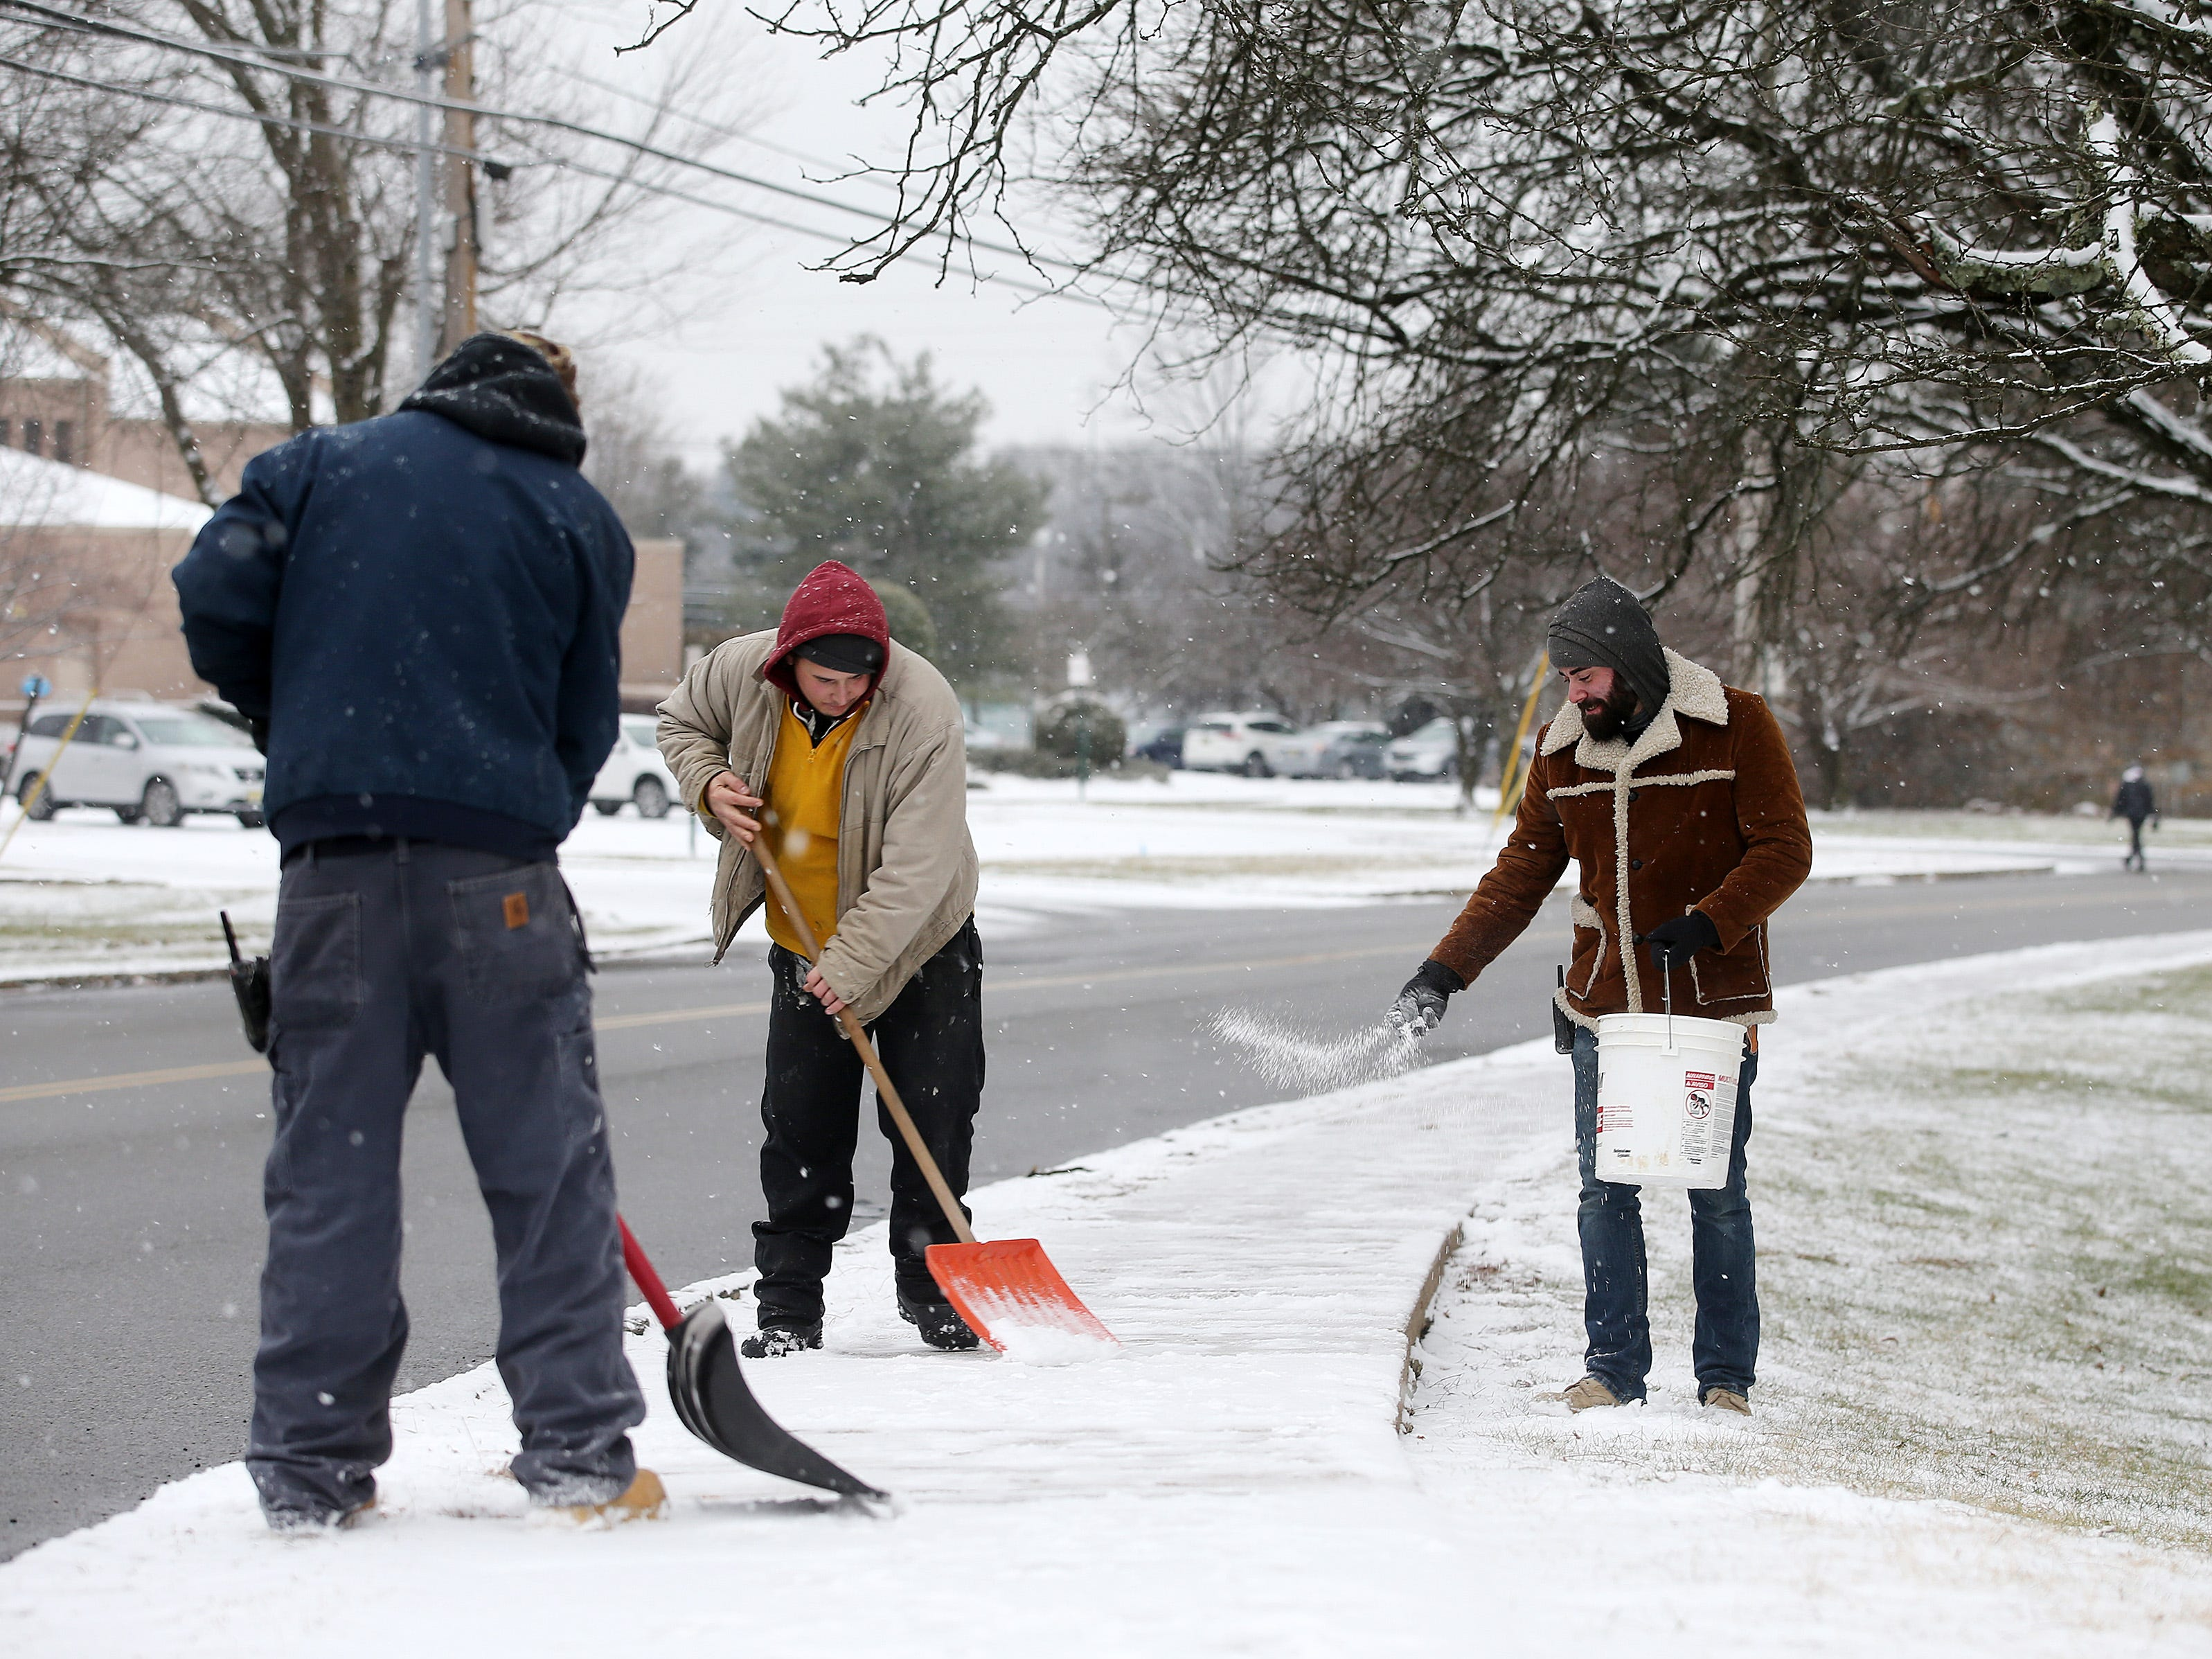 Thomas Titus, James Cina and Carmen Battista, all of Parsippany and maintenance workers for the Baldwin Manor apartment complex, shovel and salt the sidewalks around the complex in Parsippany, NJ Friday January 18, 2019.